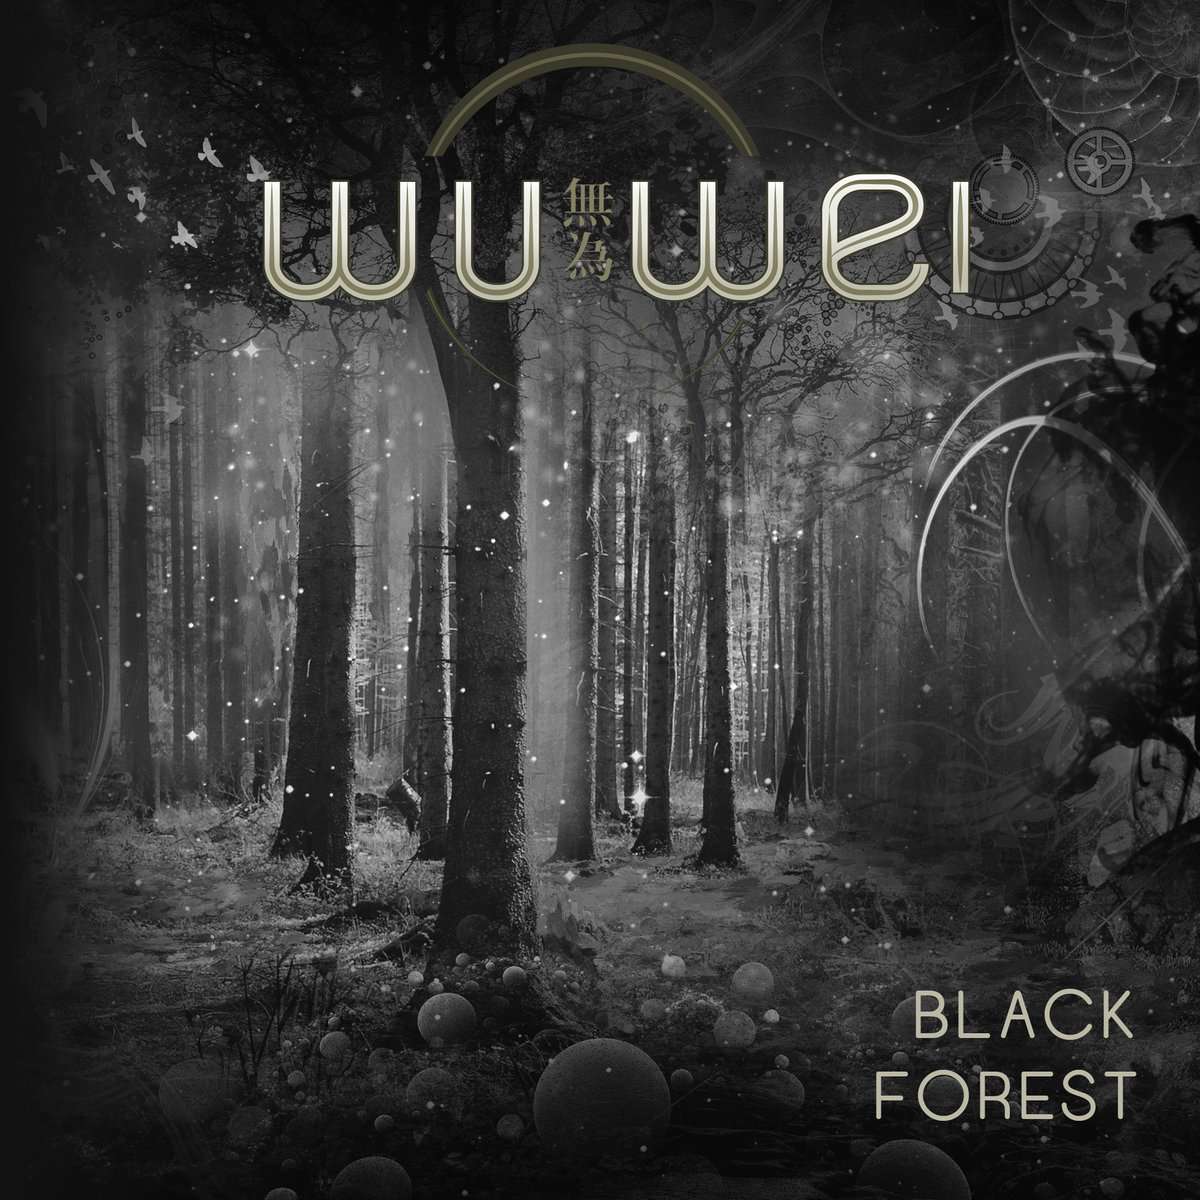 Wu Wei - With the Eyes of an Owl @ 'Black Forest' album (electronic, future bass)